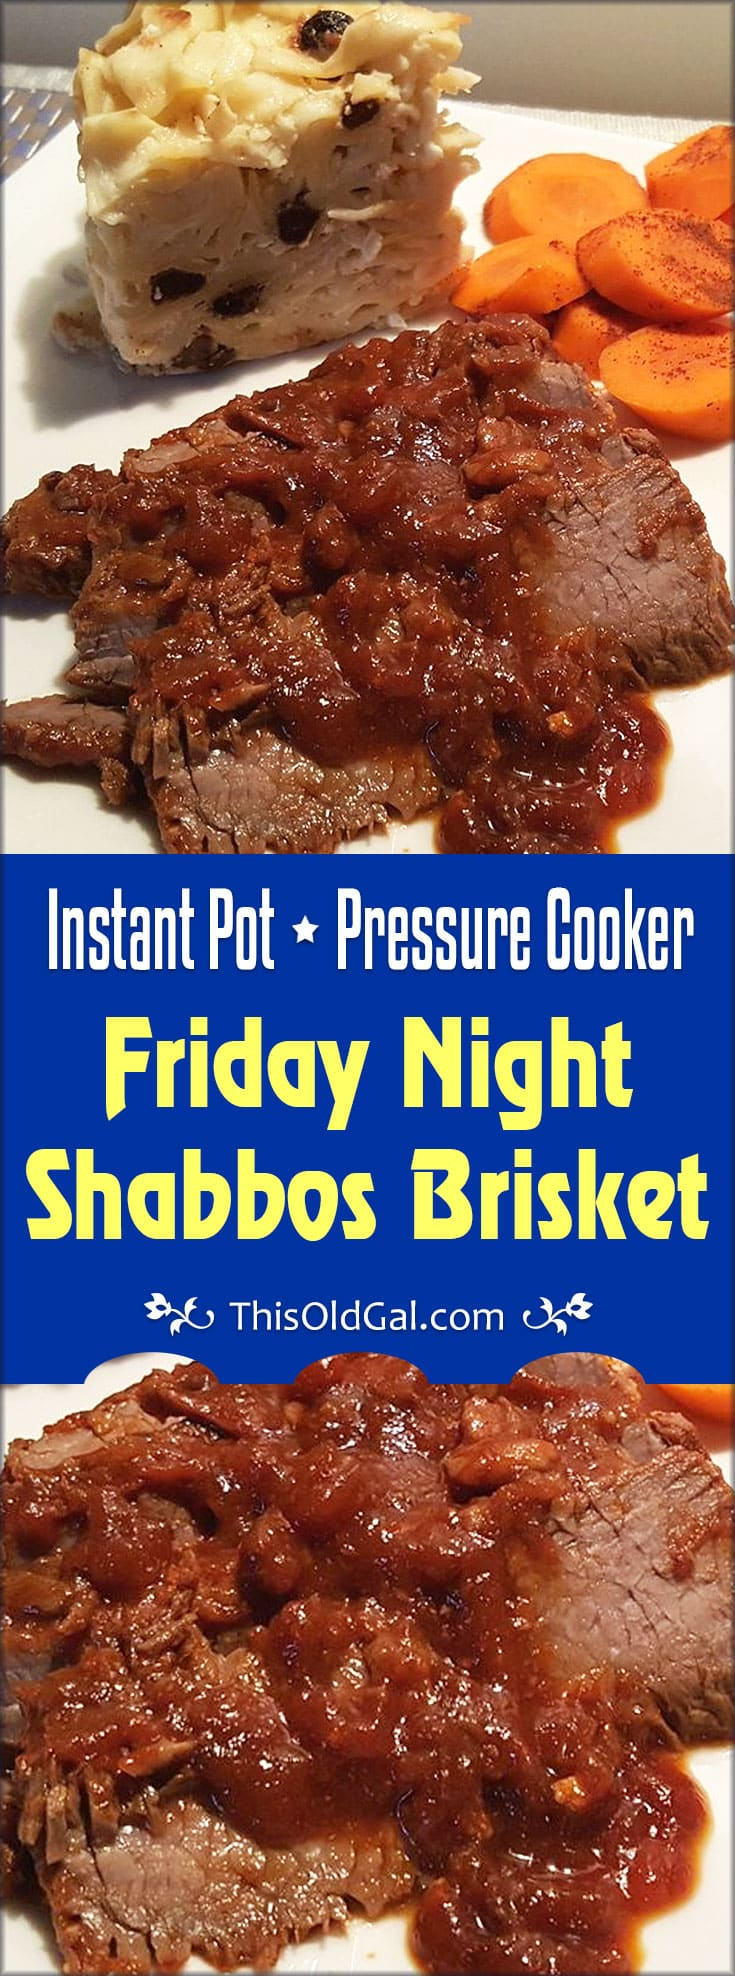 Pressure Cooker Friday Night Shabbos Brisket